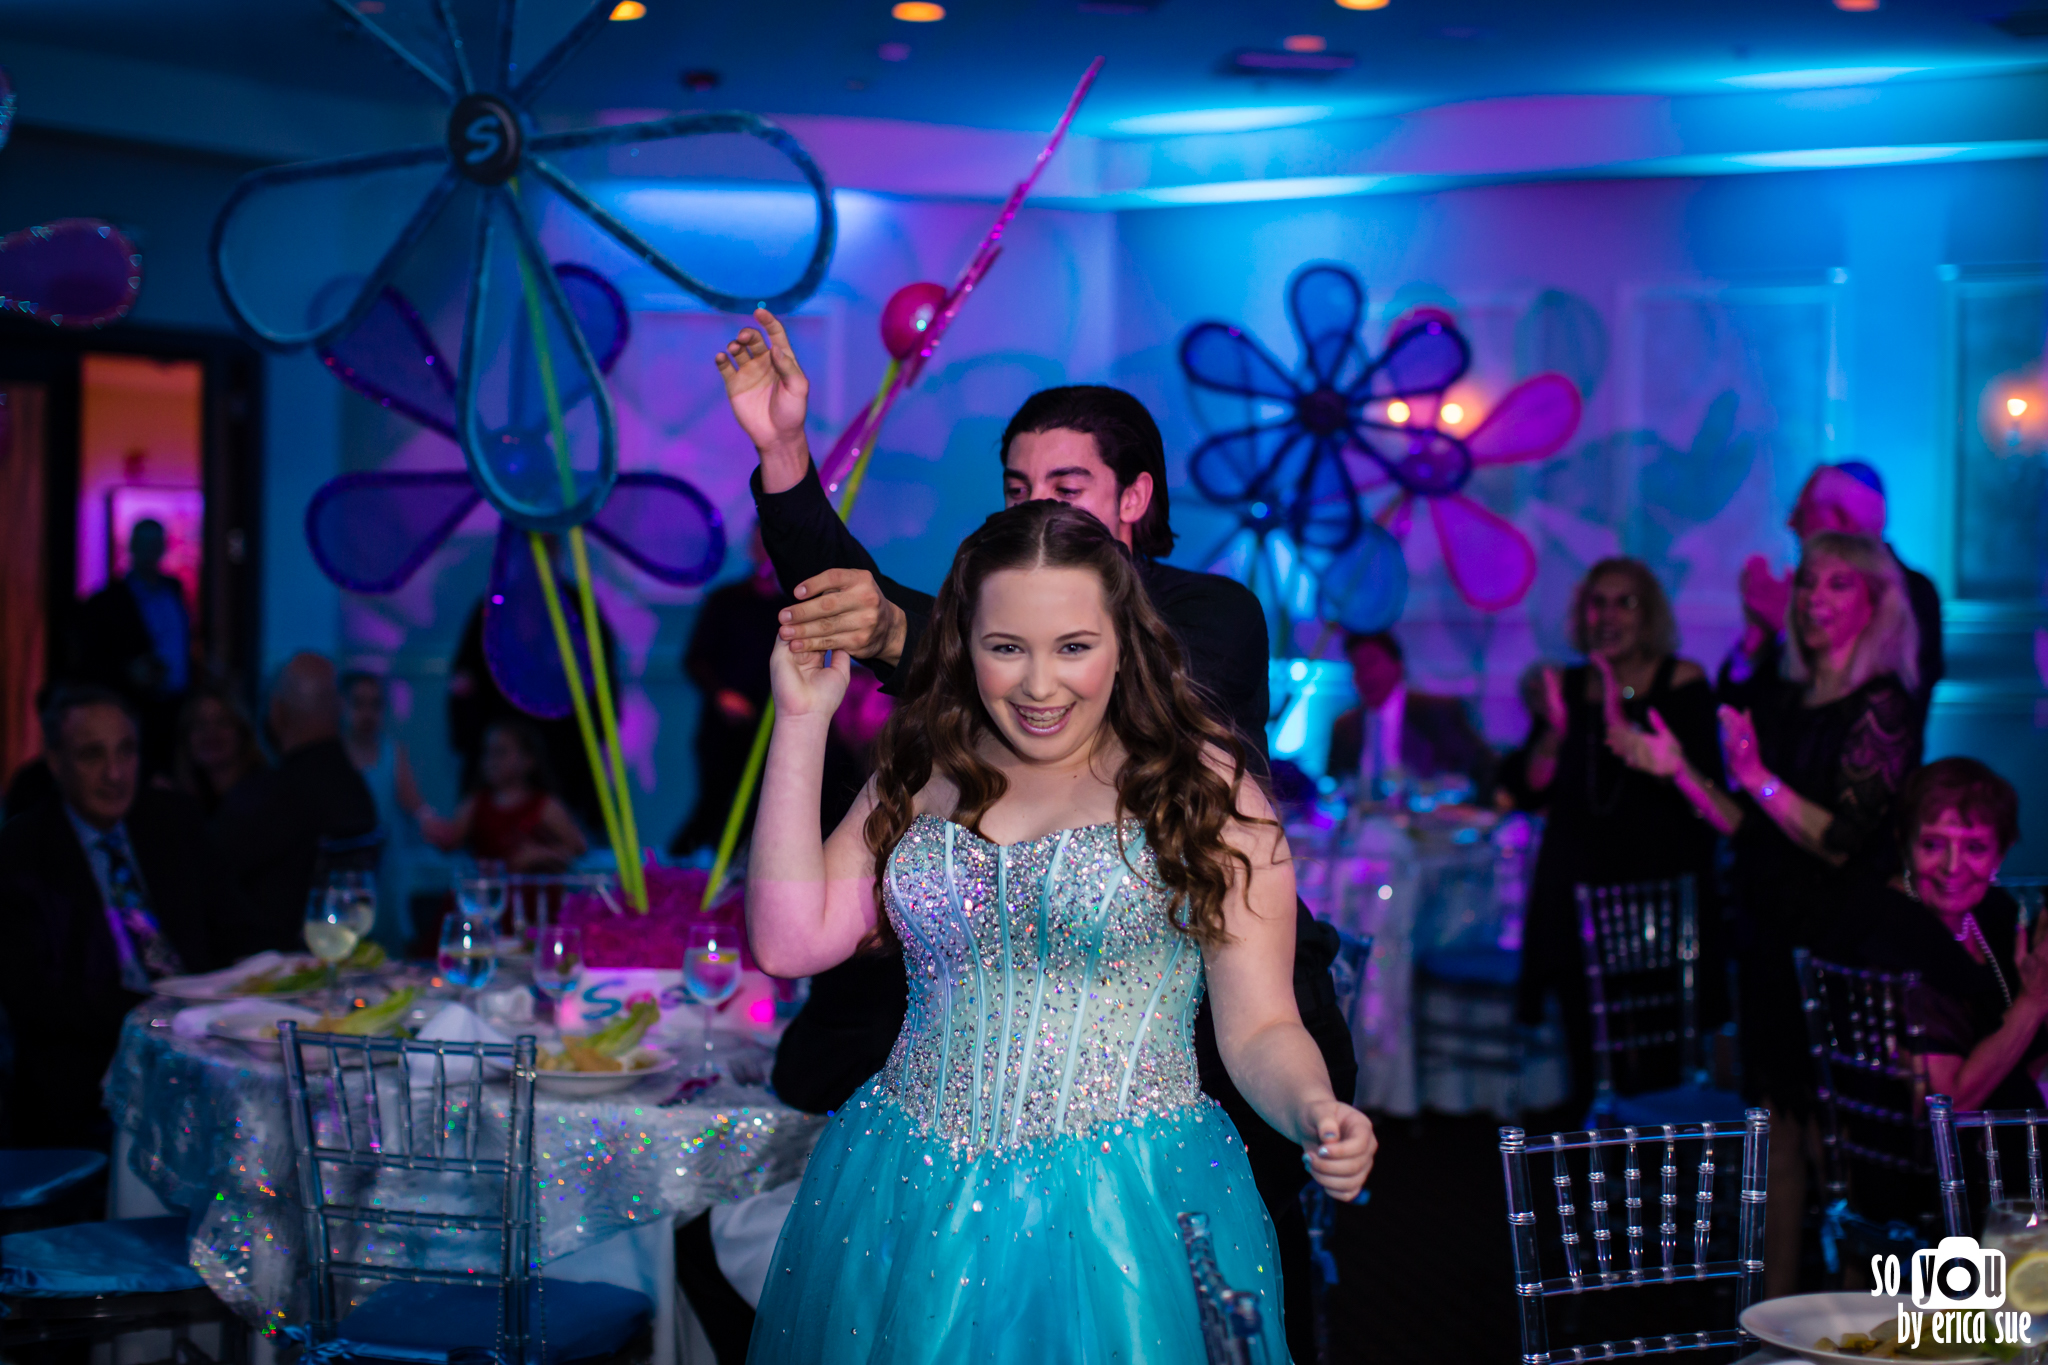 bat-mitzvah-photography-south-florida-broward-kol-ami-plantation-so-you-by-erica-sue-0773.jpg